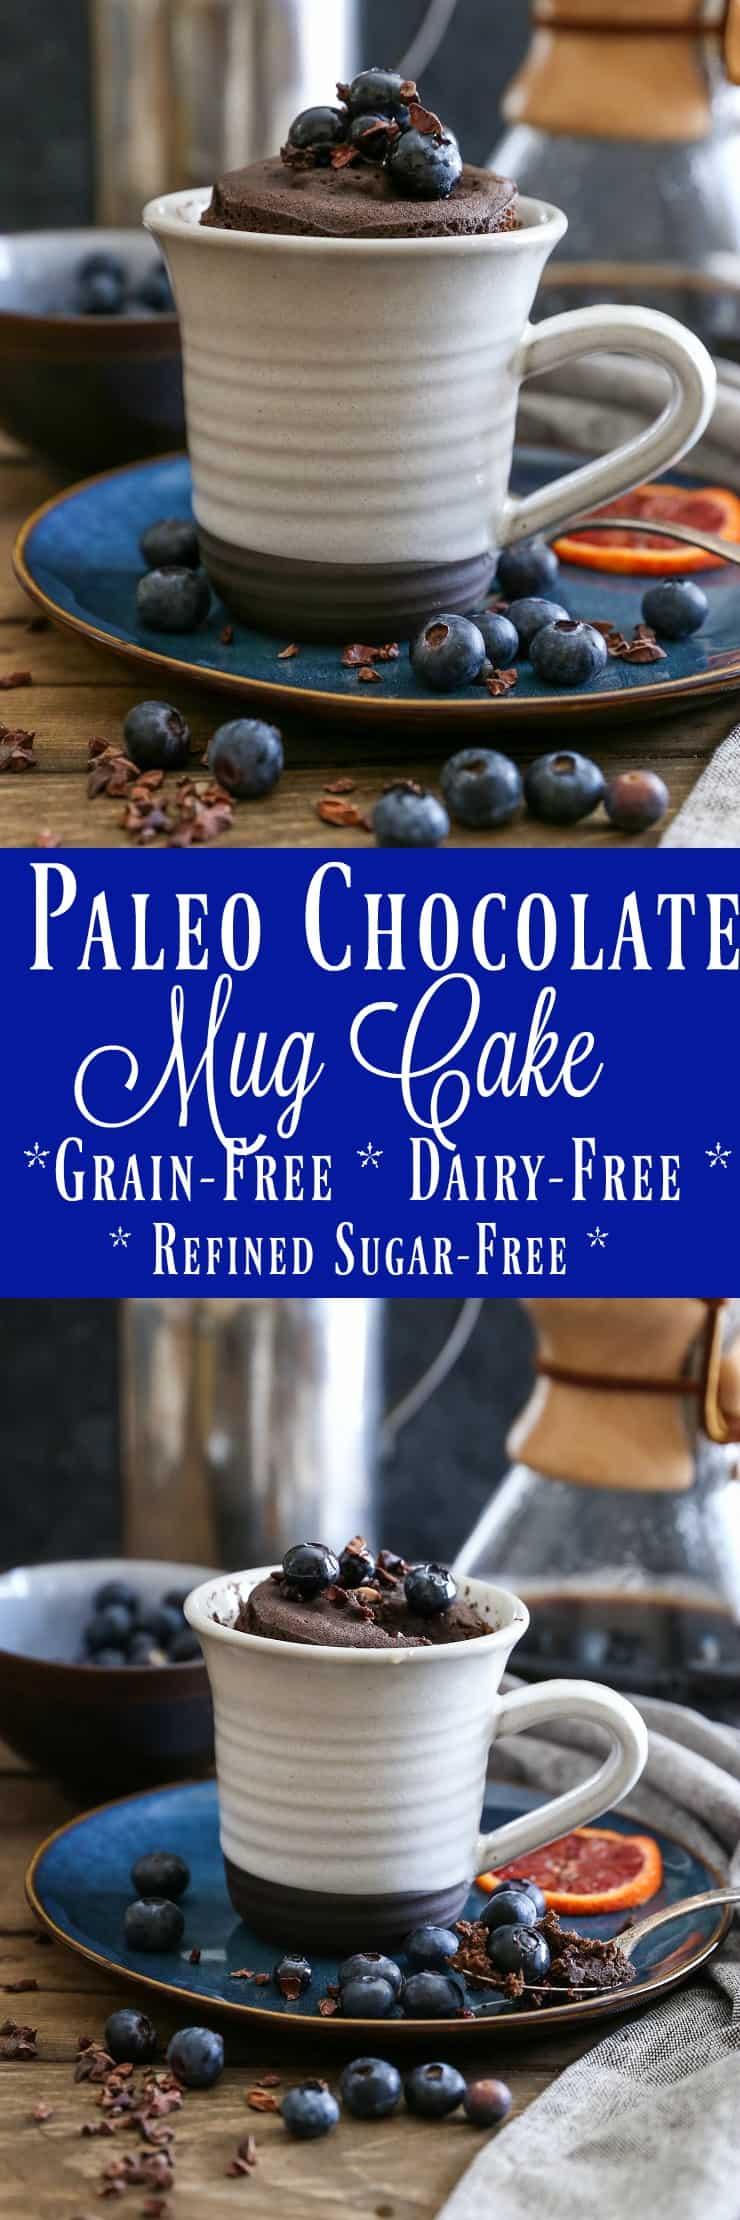 5-Minute Paleo Chocolate Mug Cake made grain-free, refined sugar-free, and dairy-free. This healthy cake-for-one takes hardly any effort to make and is absolutely delicious!